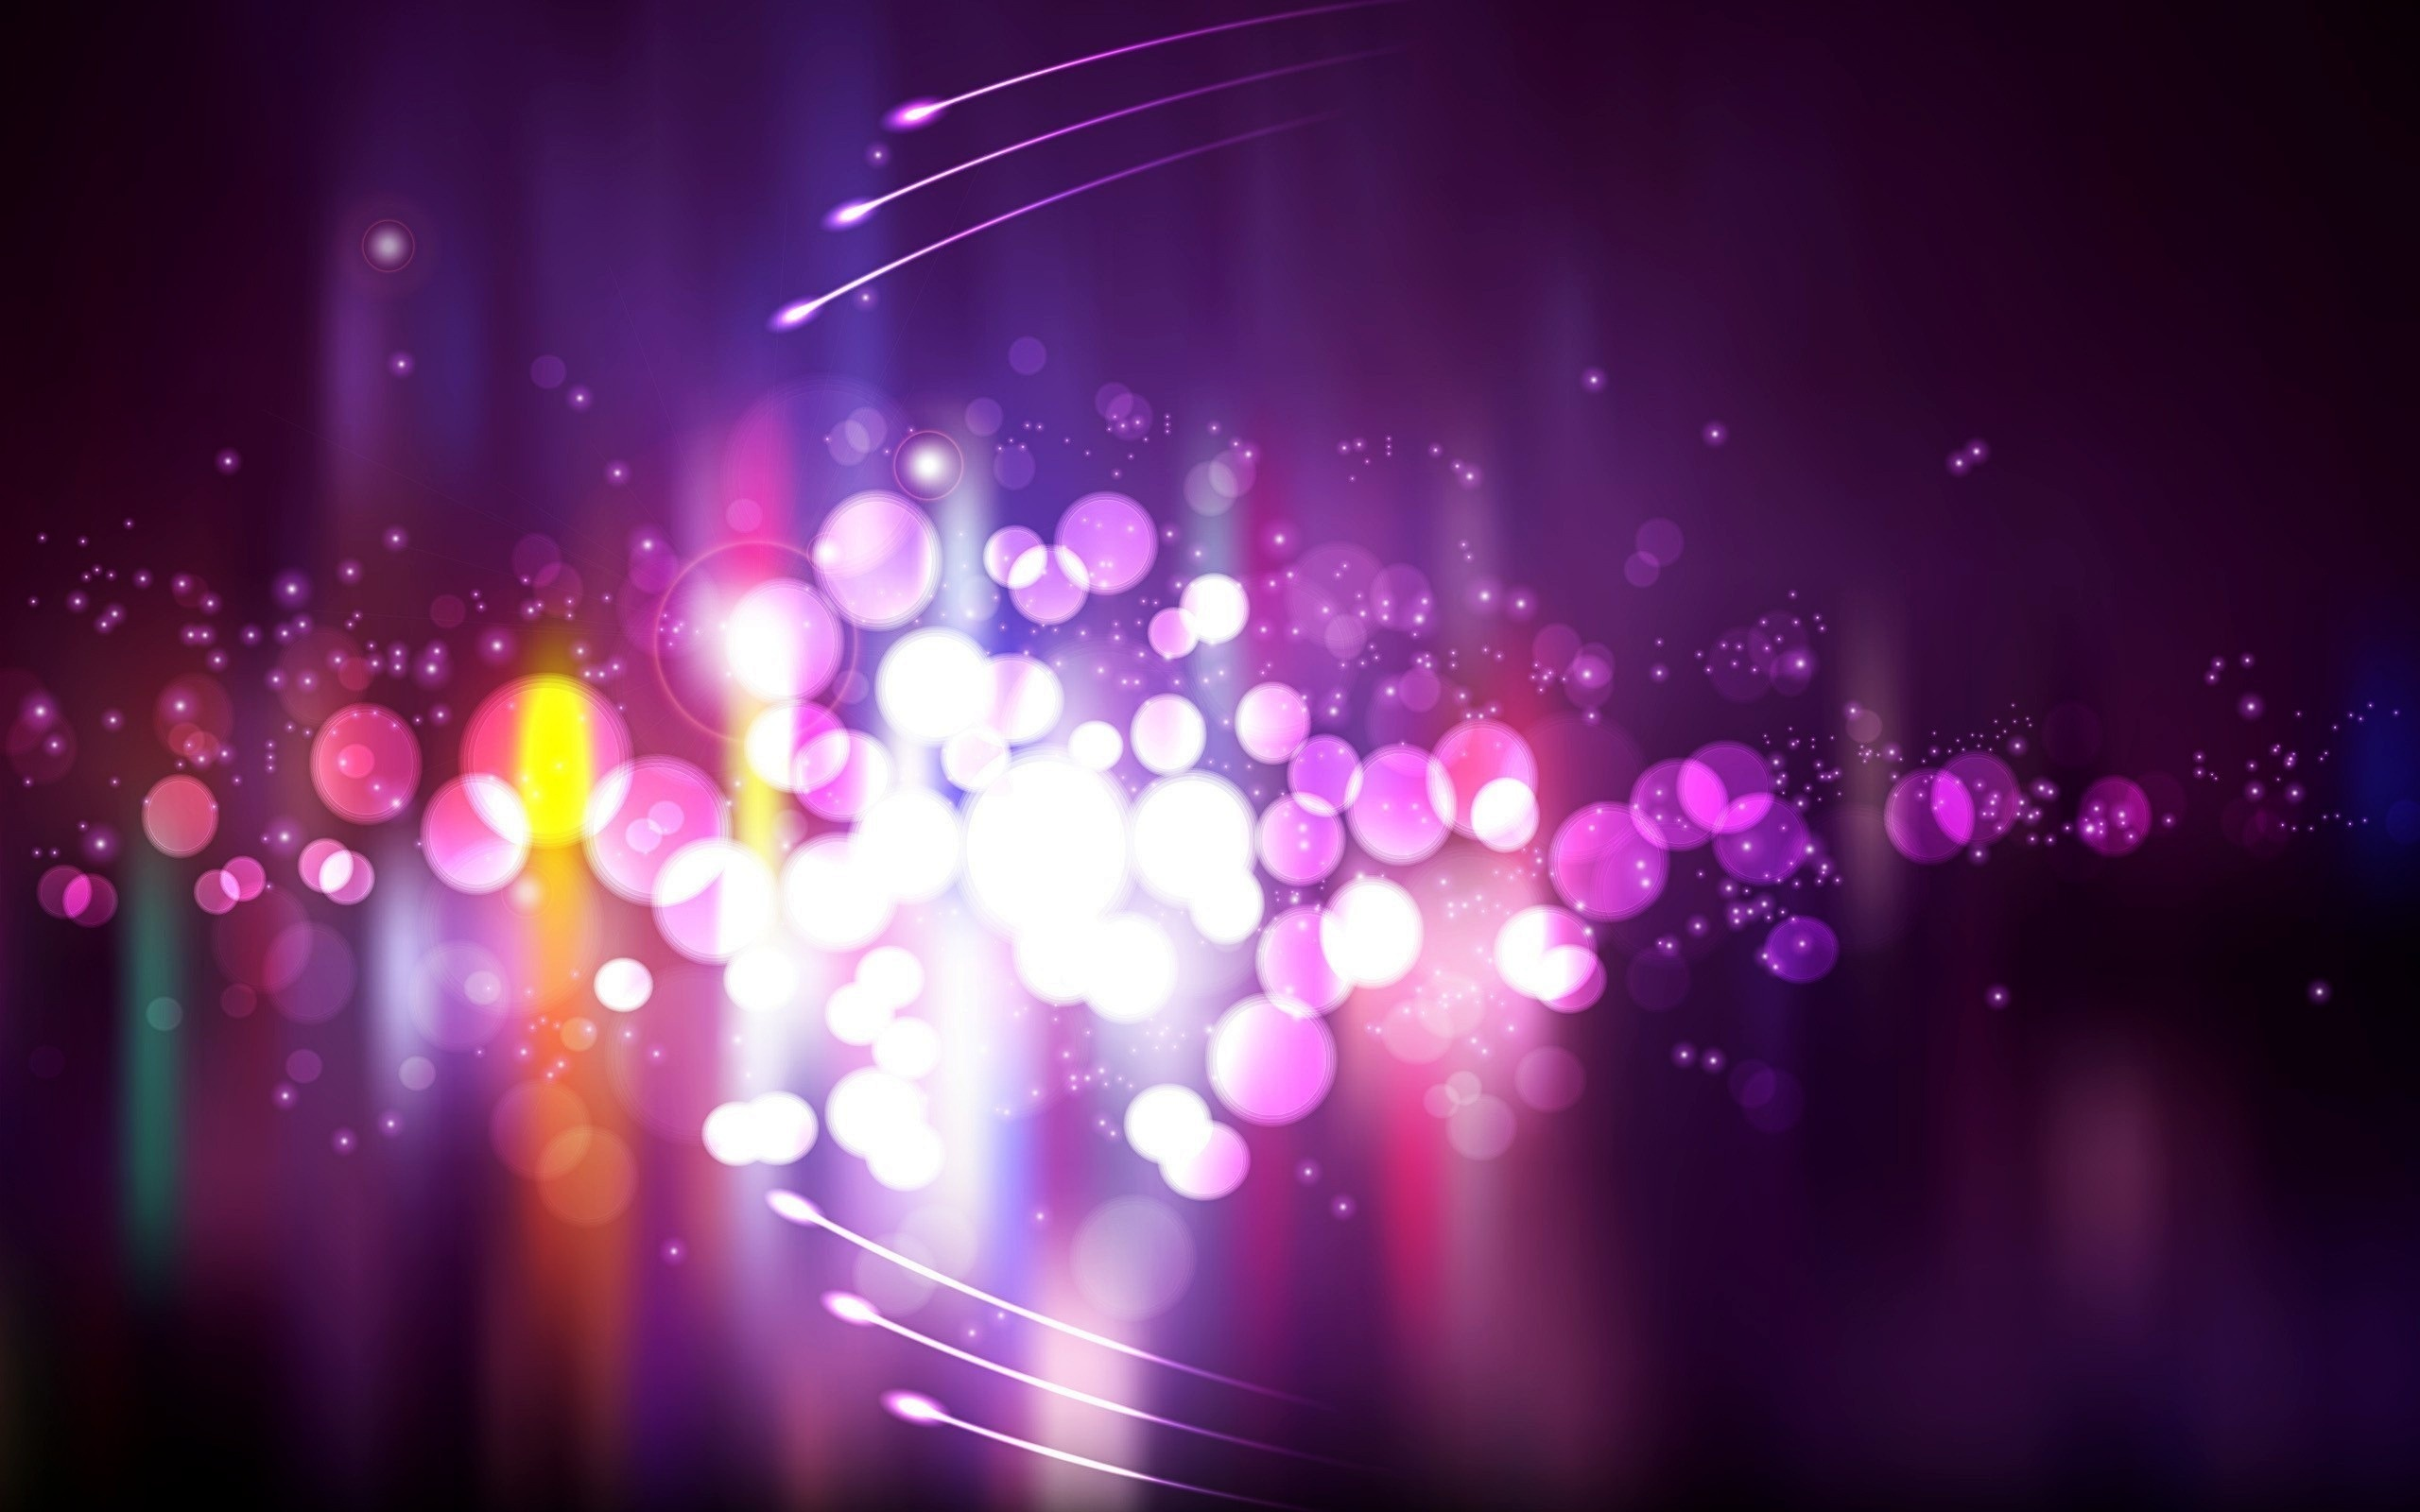 abstract background blur circle - photo #9